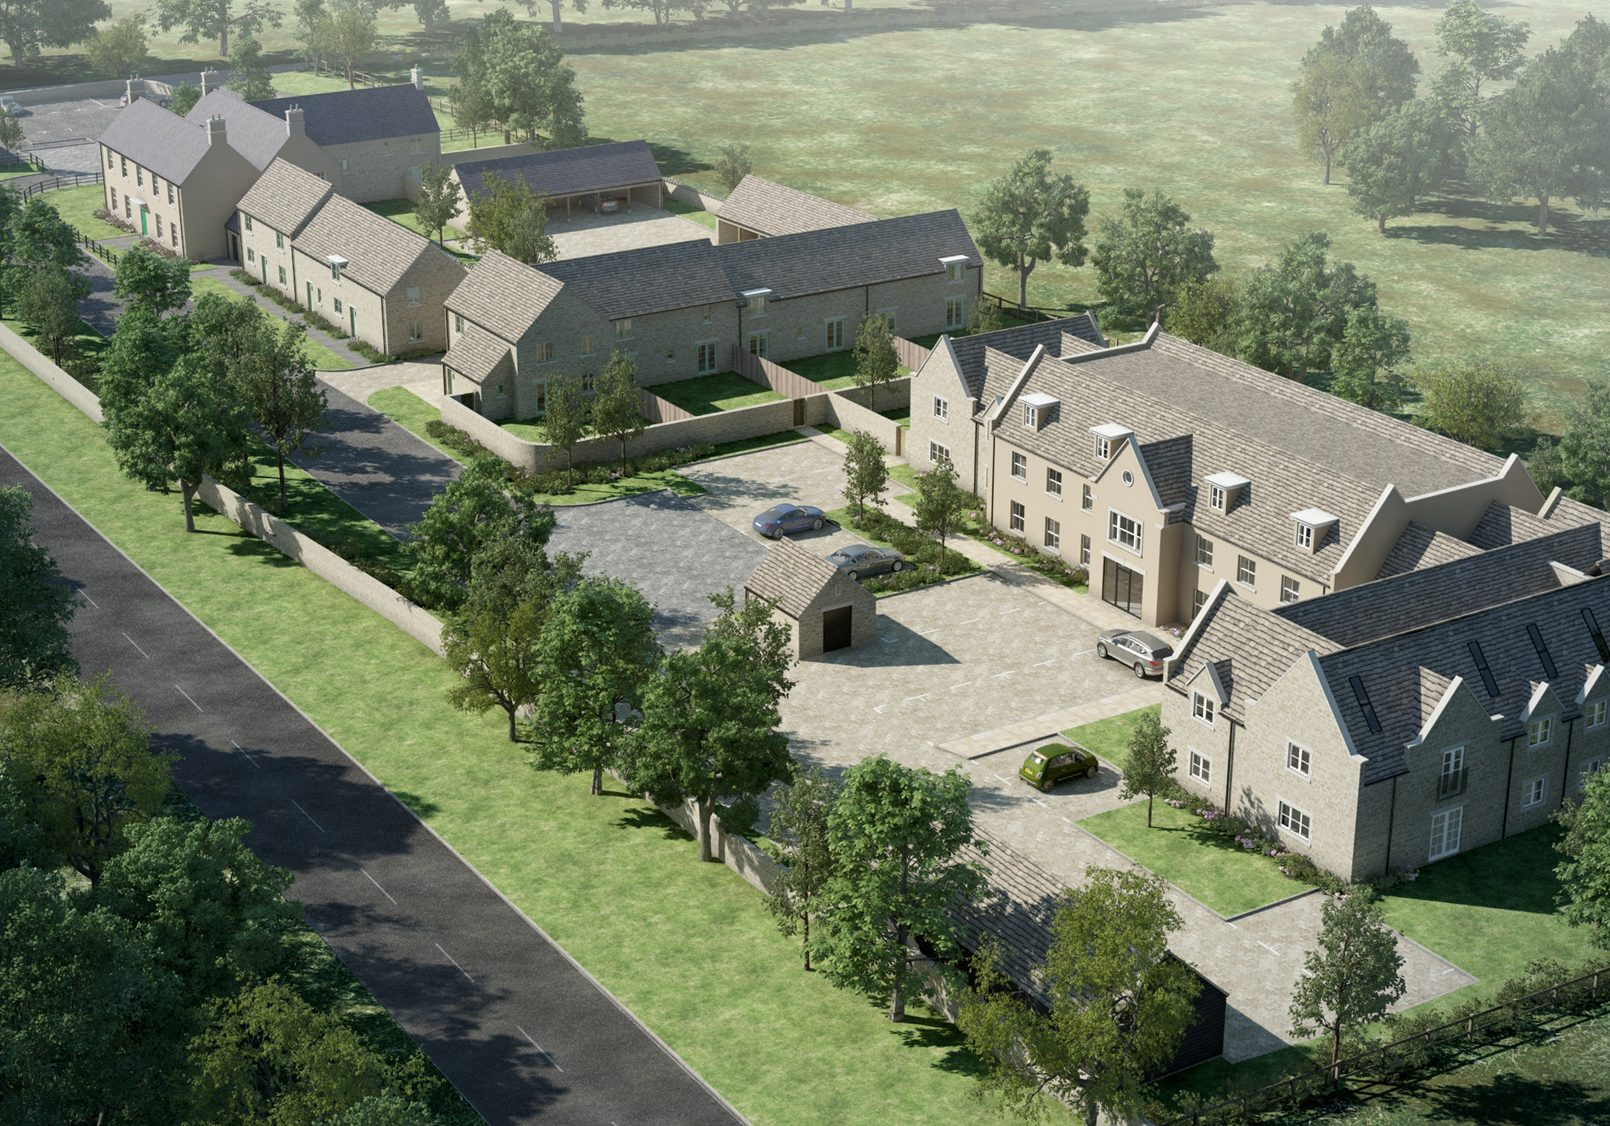 32 home regeneration and new build development, <br> Oxfordshire